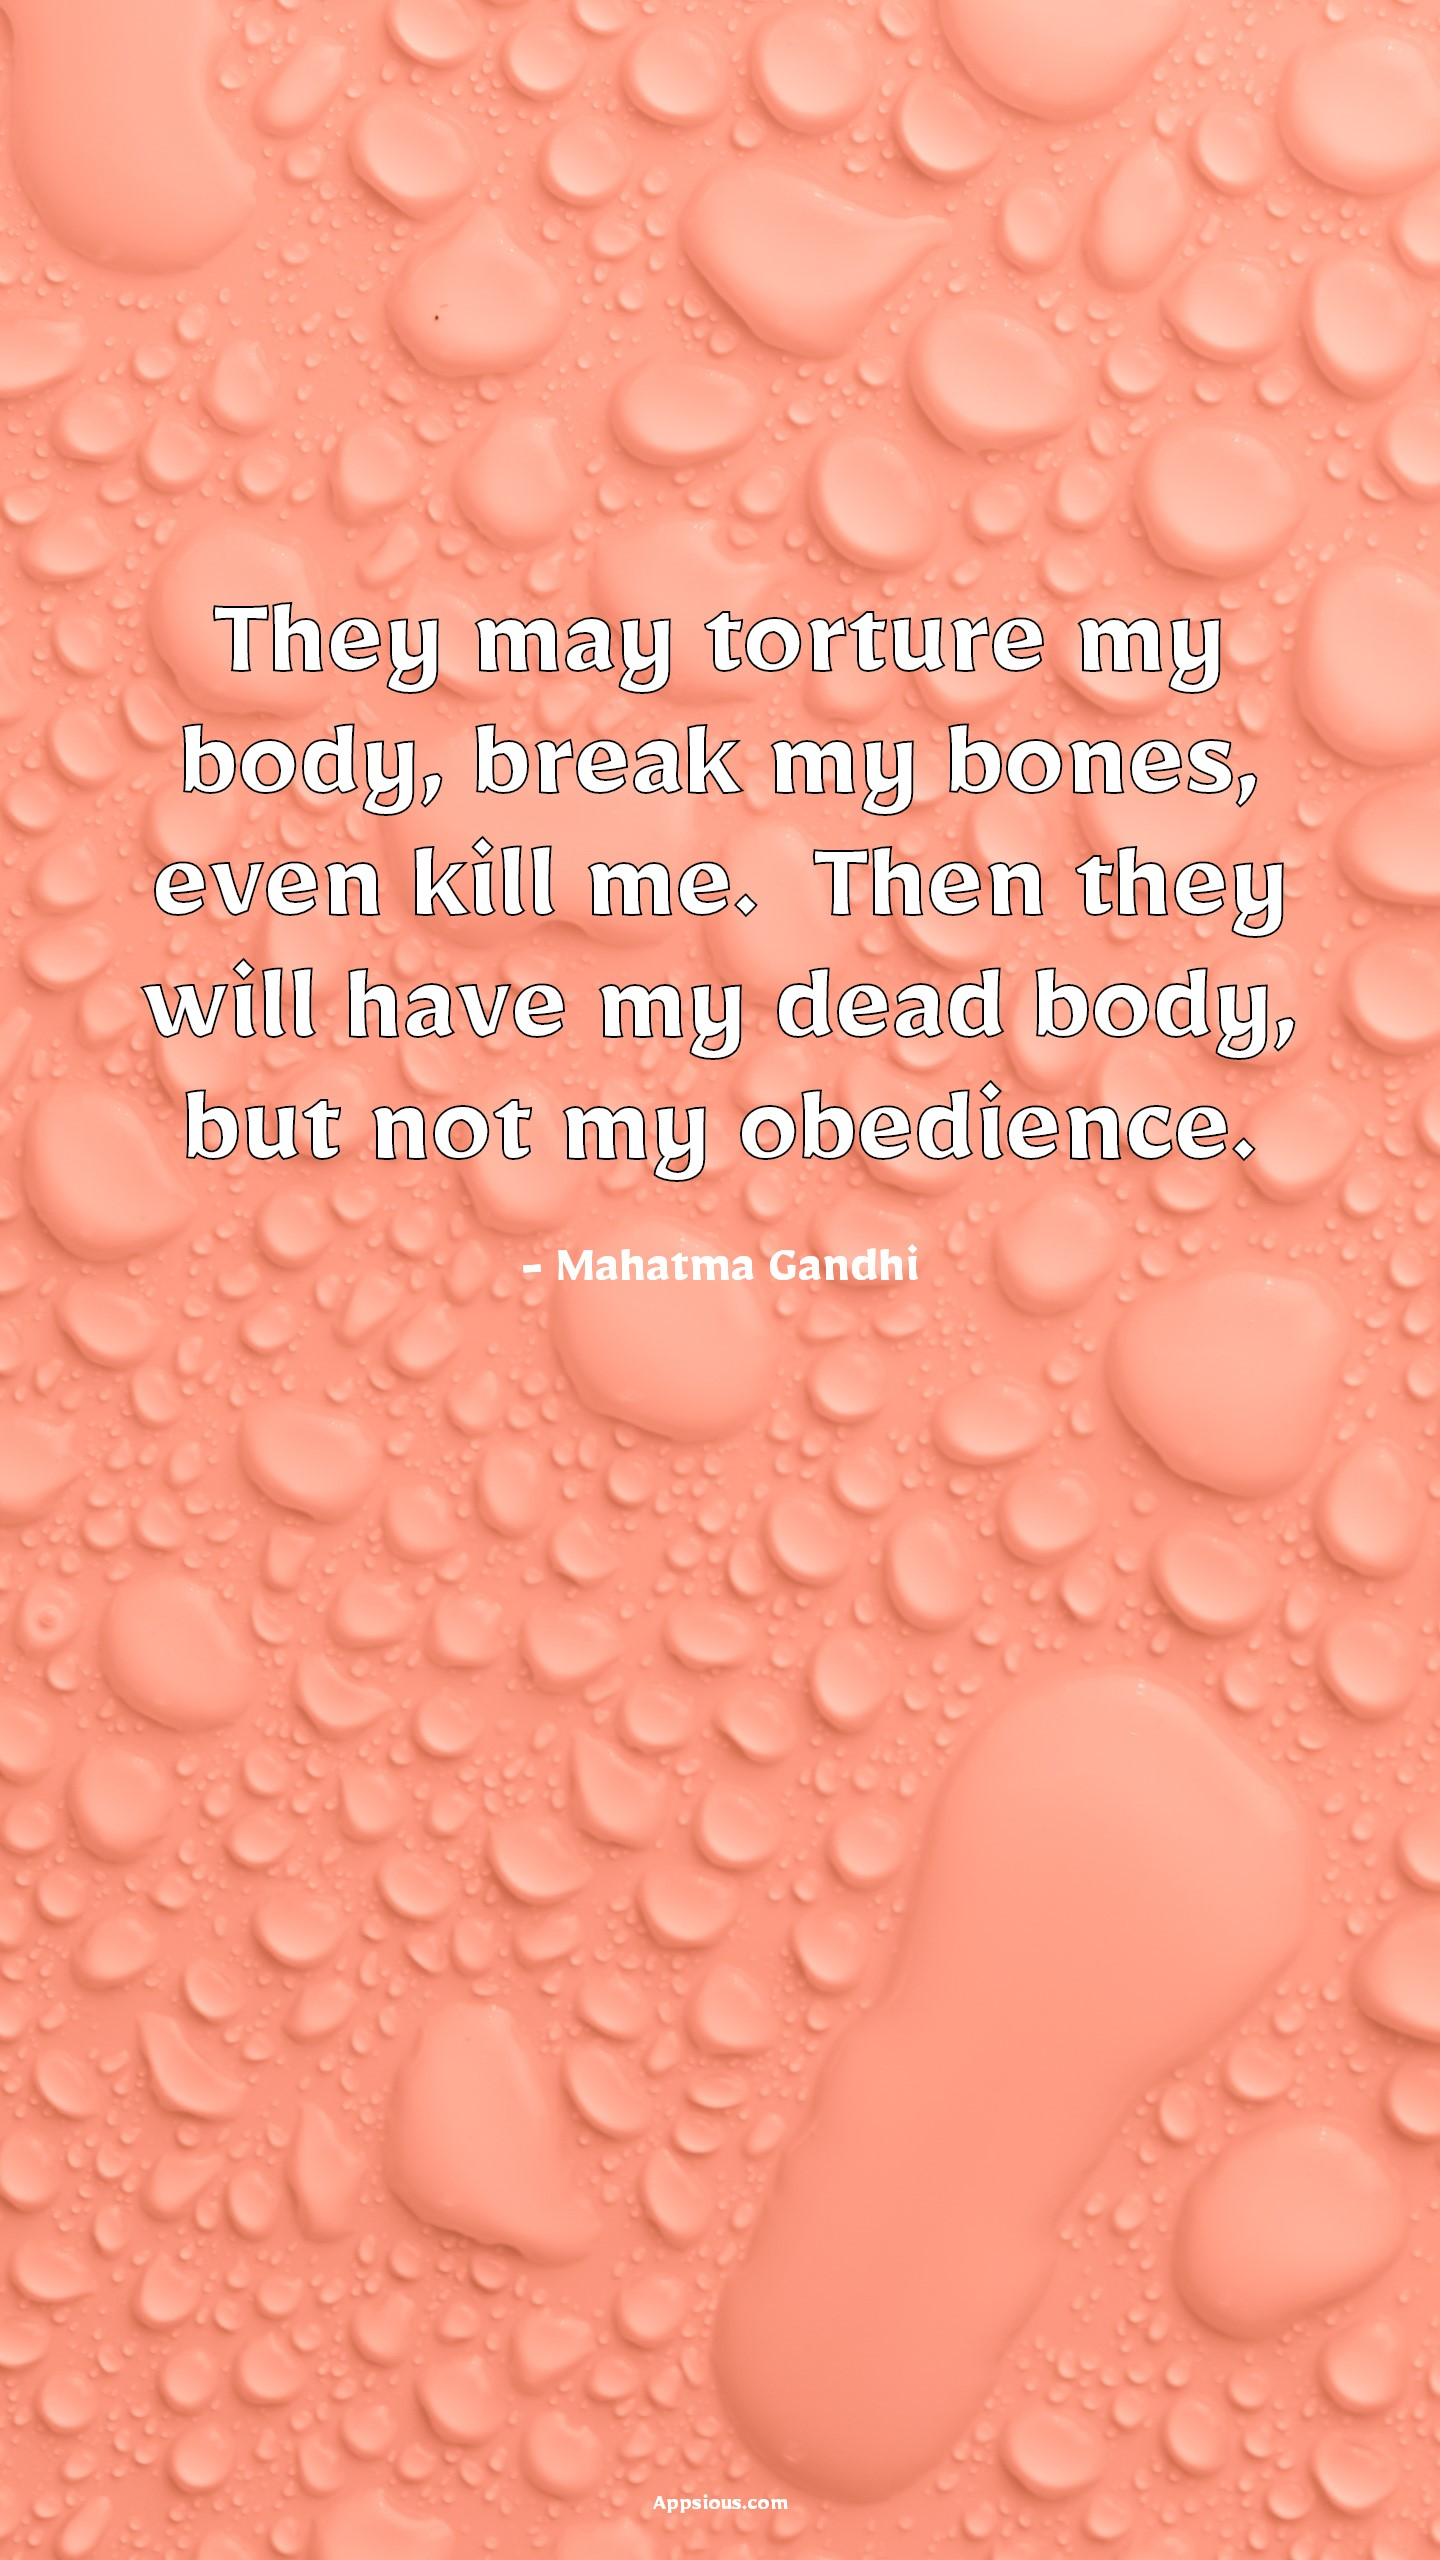 They may torture my body, break my bones, even kill me.  Then they will have my dead body, but not my obedience.